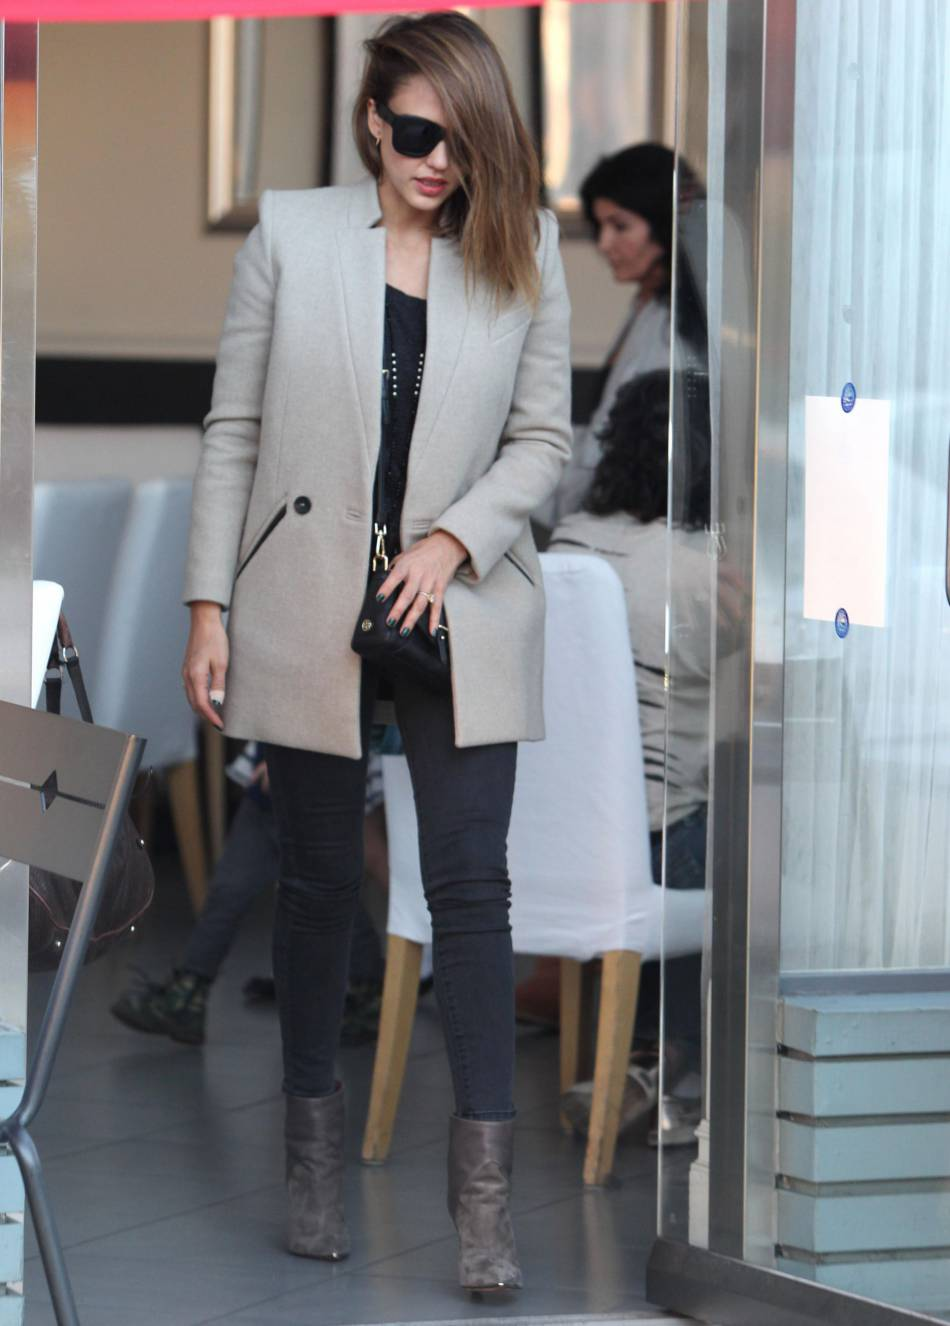 Jessica Alba : on copie son look automnal et élégant.